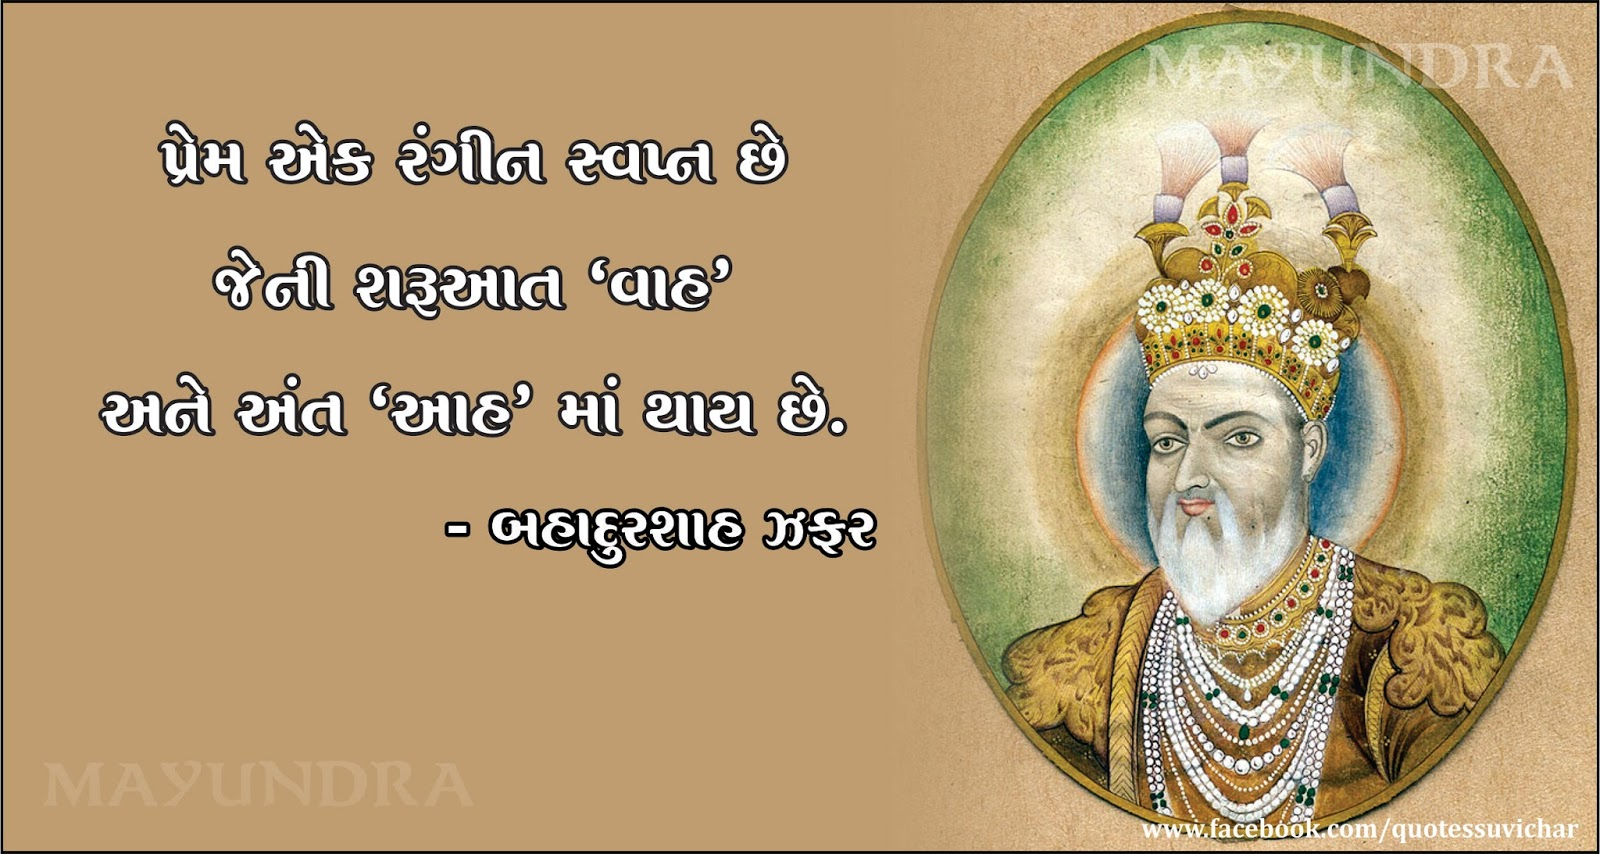 Gujarati Quotes Love Bahadurshah Zafar Quotes India Quotes